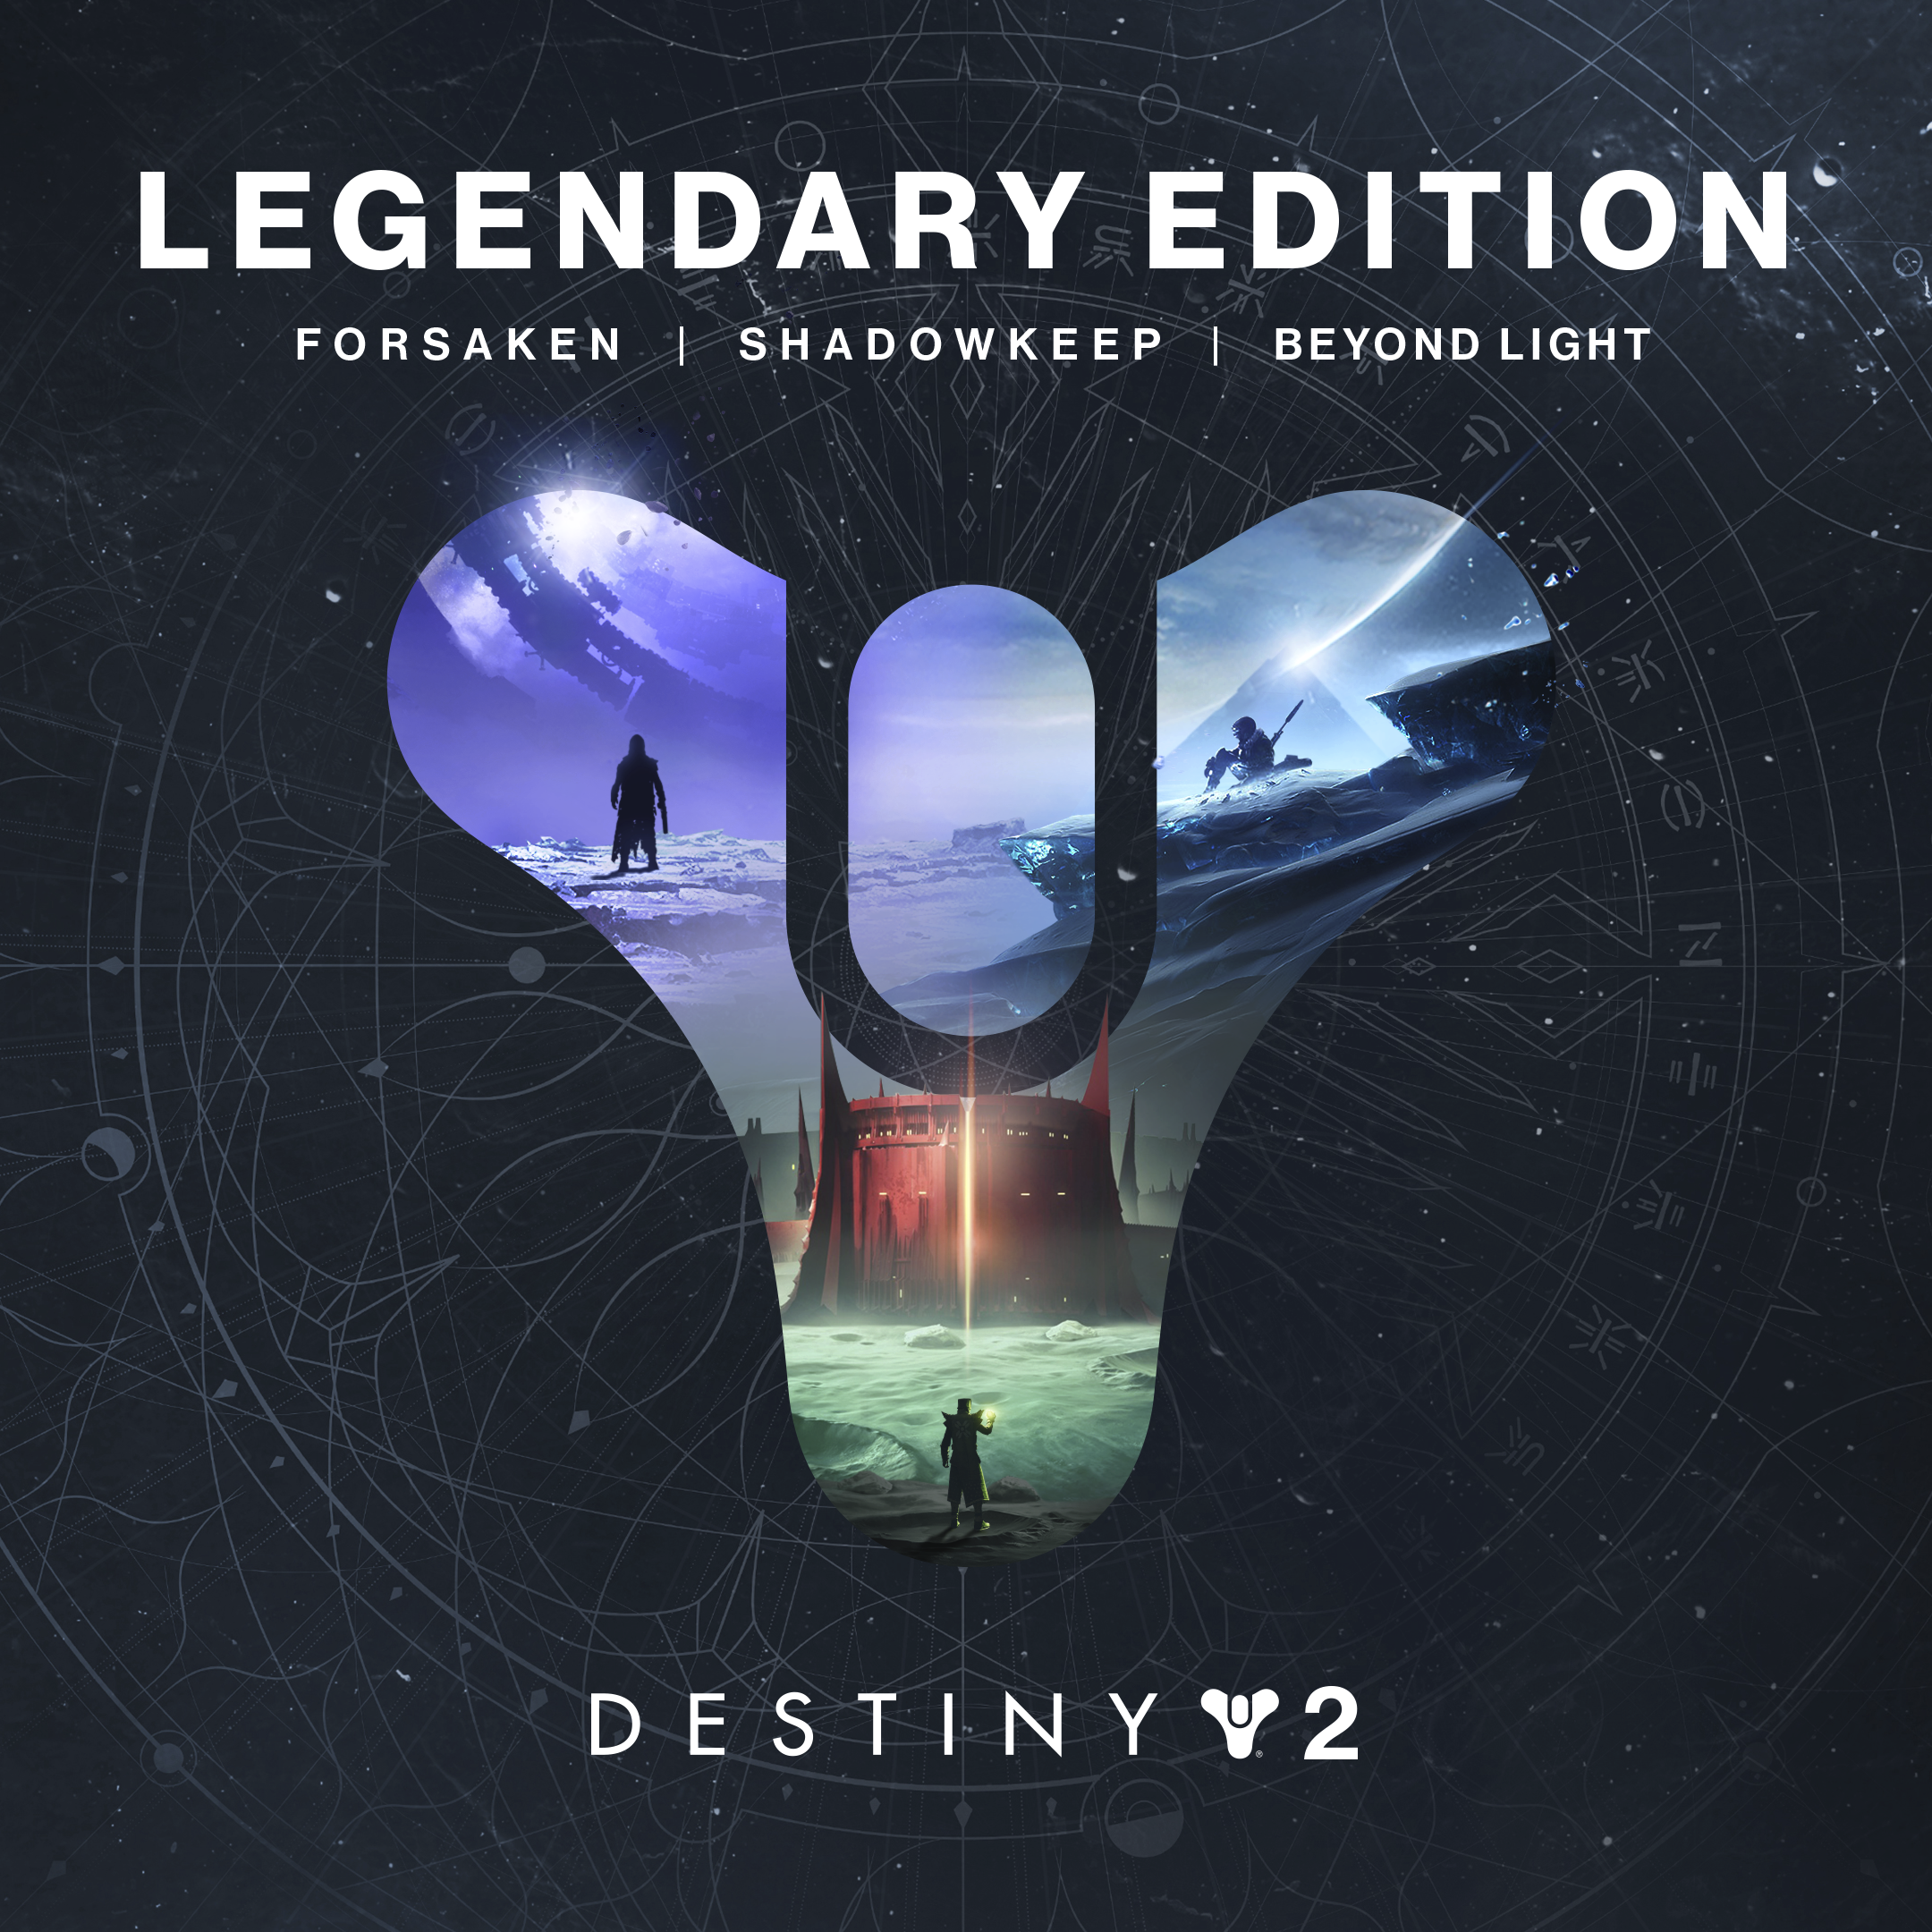 Destiny 2: Legendary Edition - Store Art